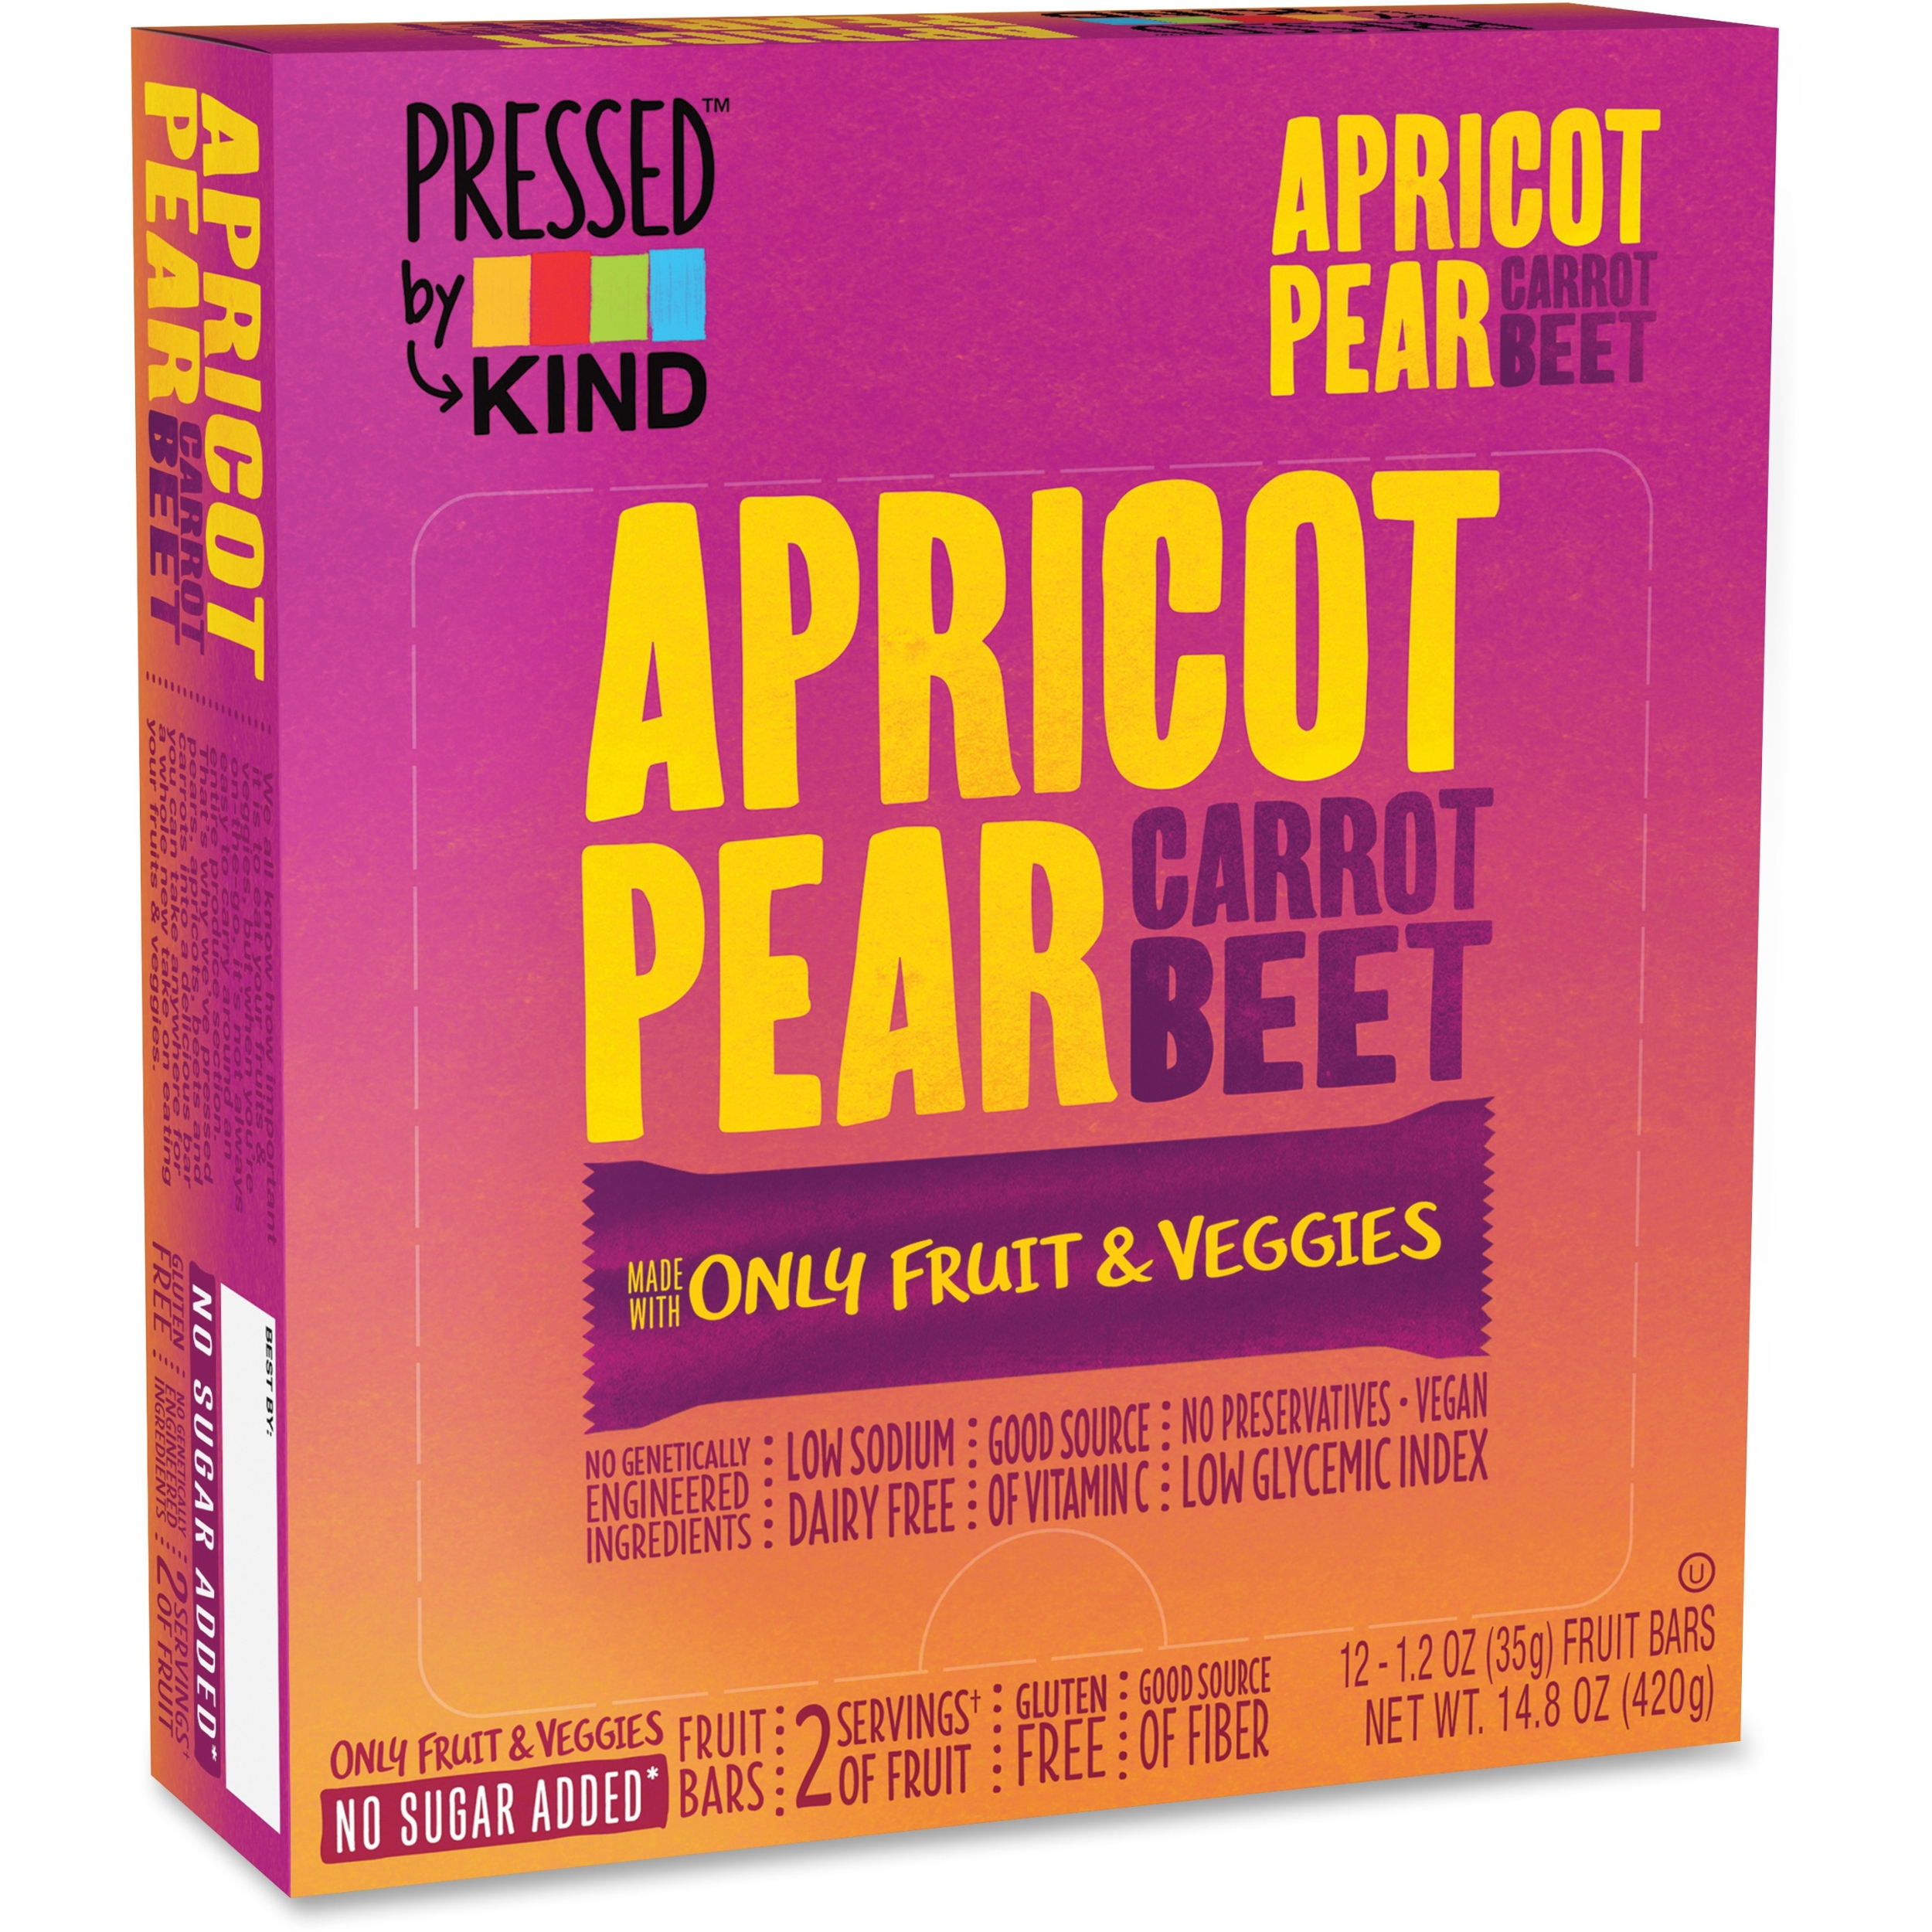 Kind Pressed Apricot Pear Carrot Beet Fruit Bars - Individually Wrapped, Non-gmo, Sodium-free, Gluten-free, Dairy-free - 1.20 Oz - 12 / Box (knd-24204)